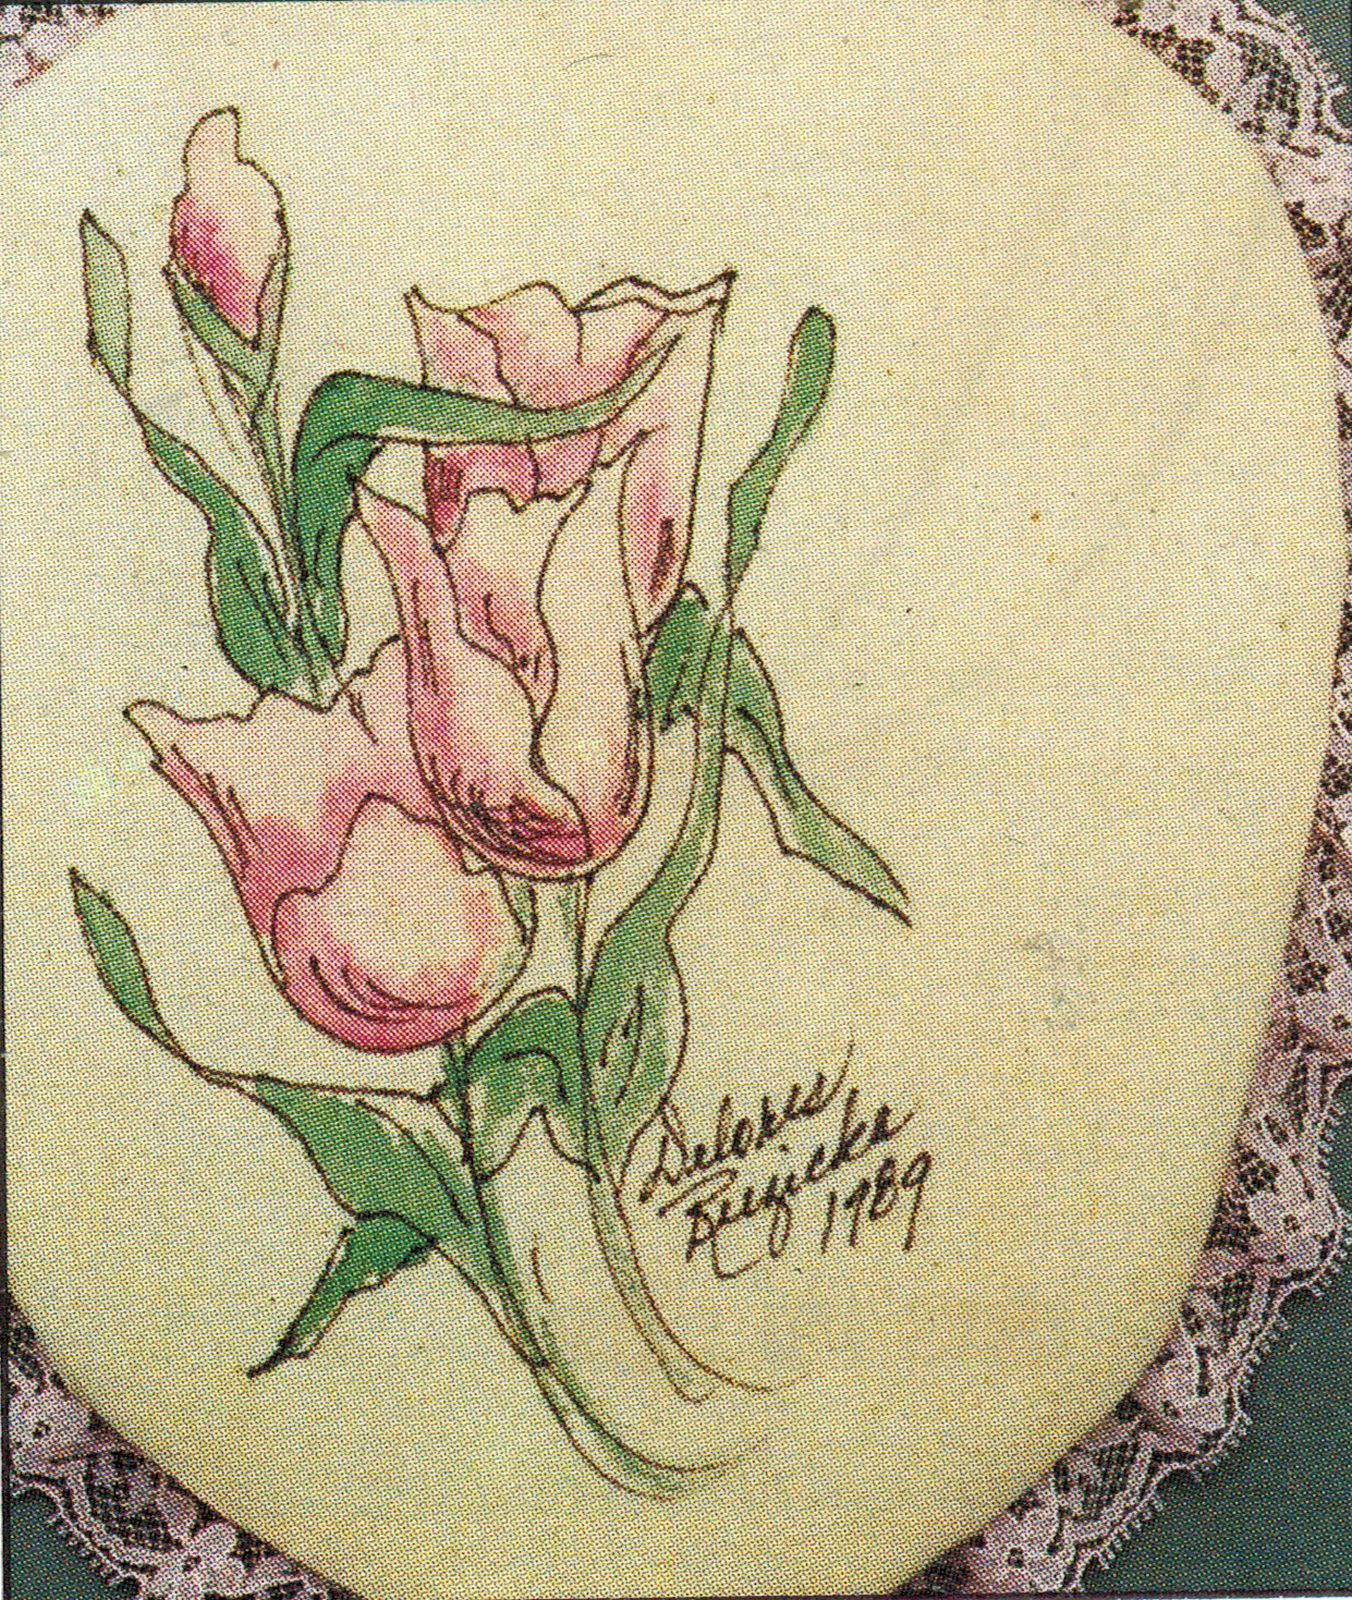 15 Vtg Victorian Florals Scribbles Iron On Transfer Fabric Painting Pattern Book